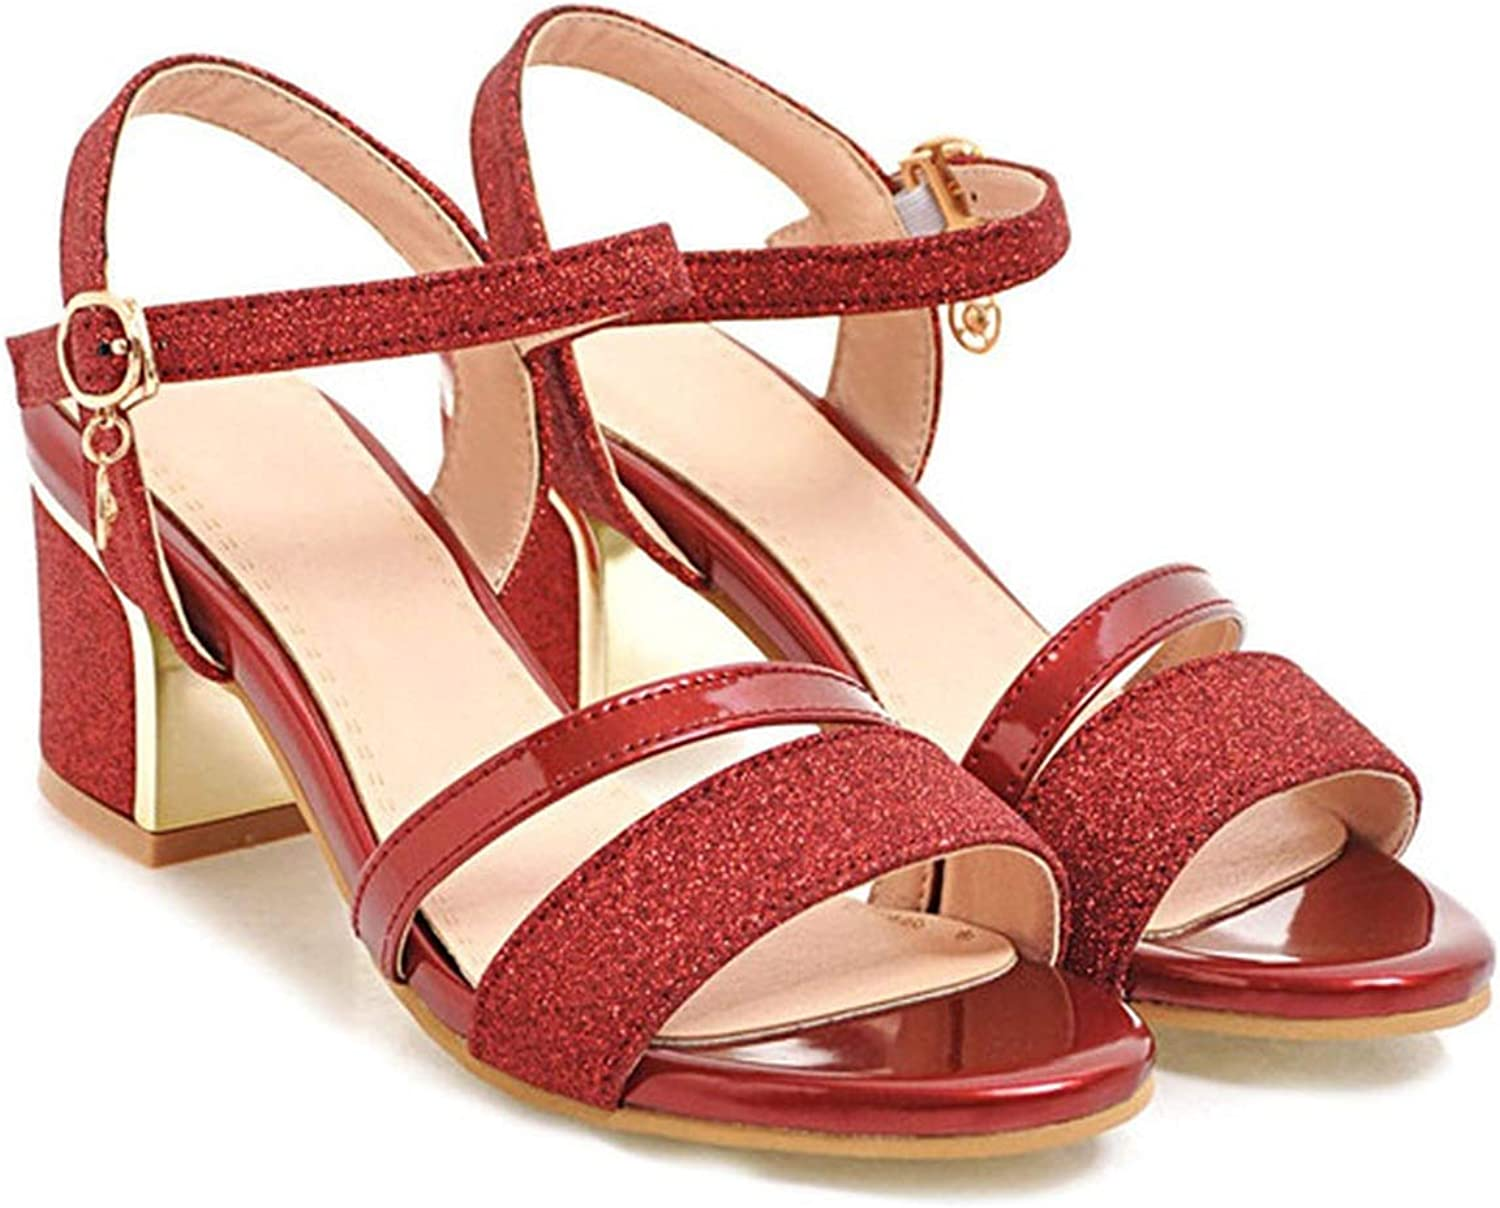 Women Sandals Block Heels Lady Party shoes Glitter High Heels Summer shoes,Red,4